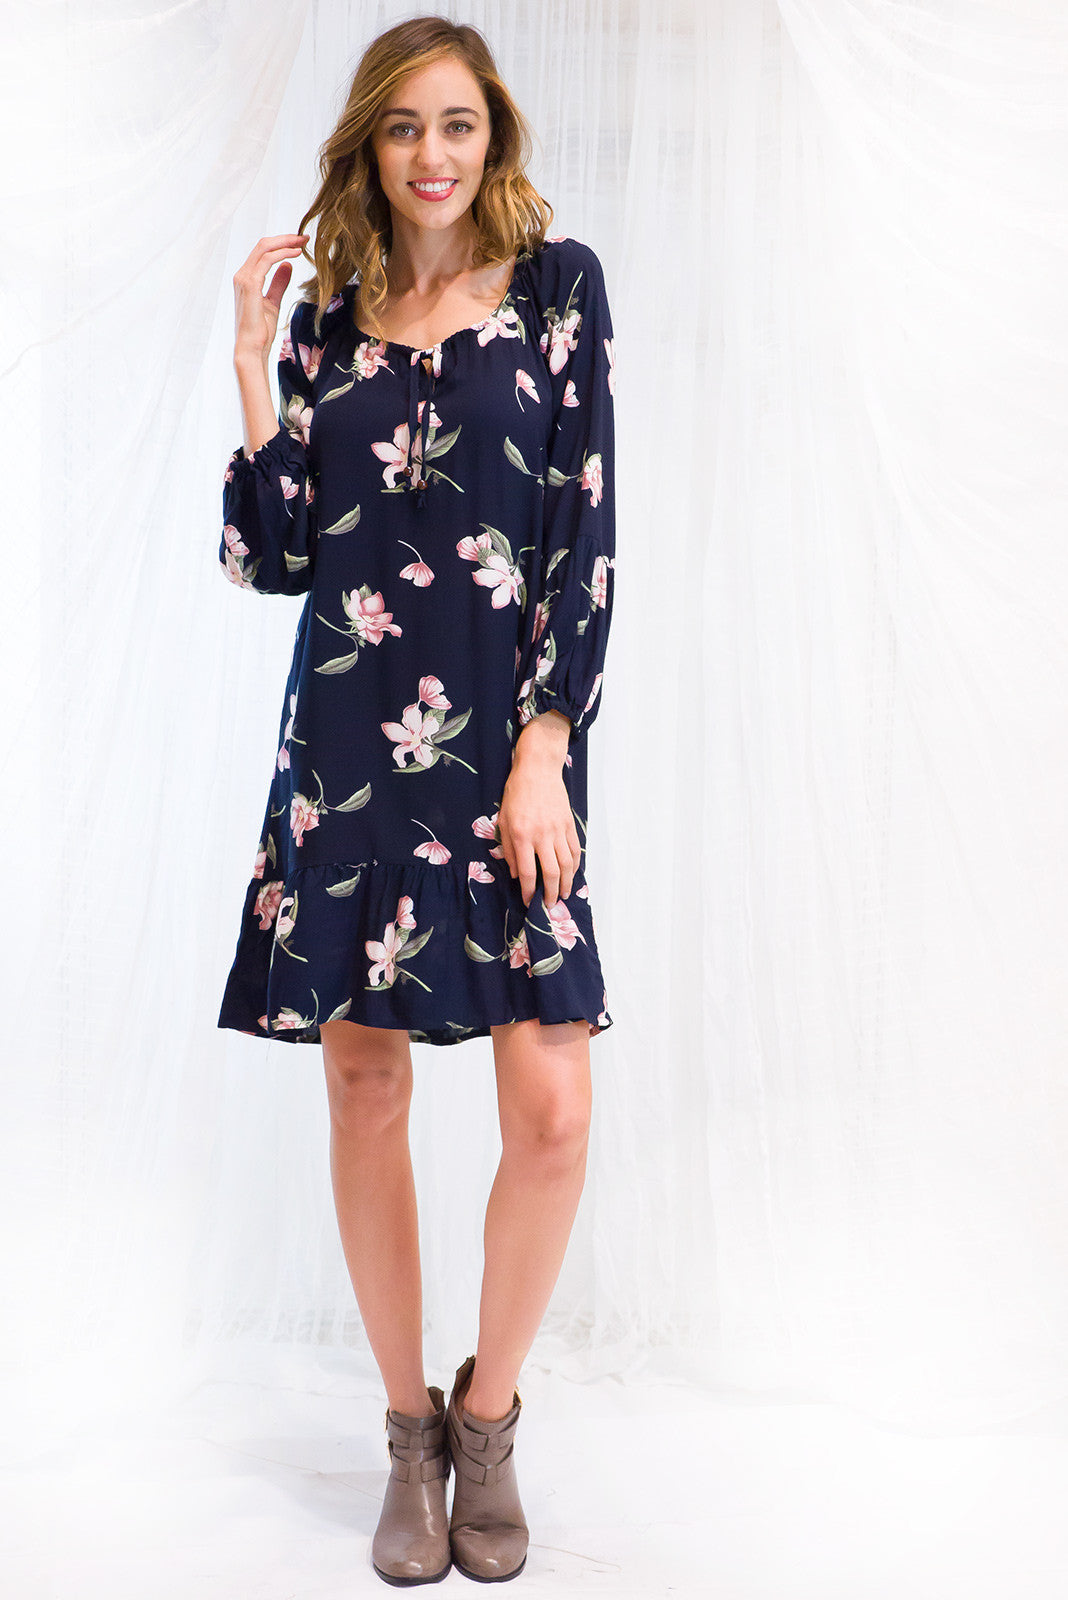 Dress Alix Winter Lily in dark navy